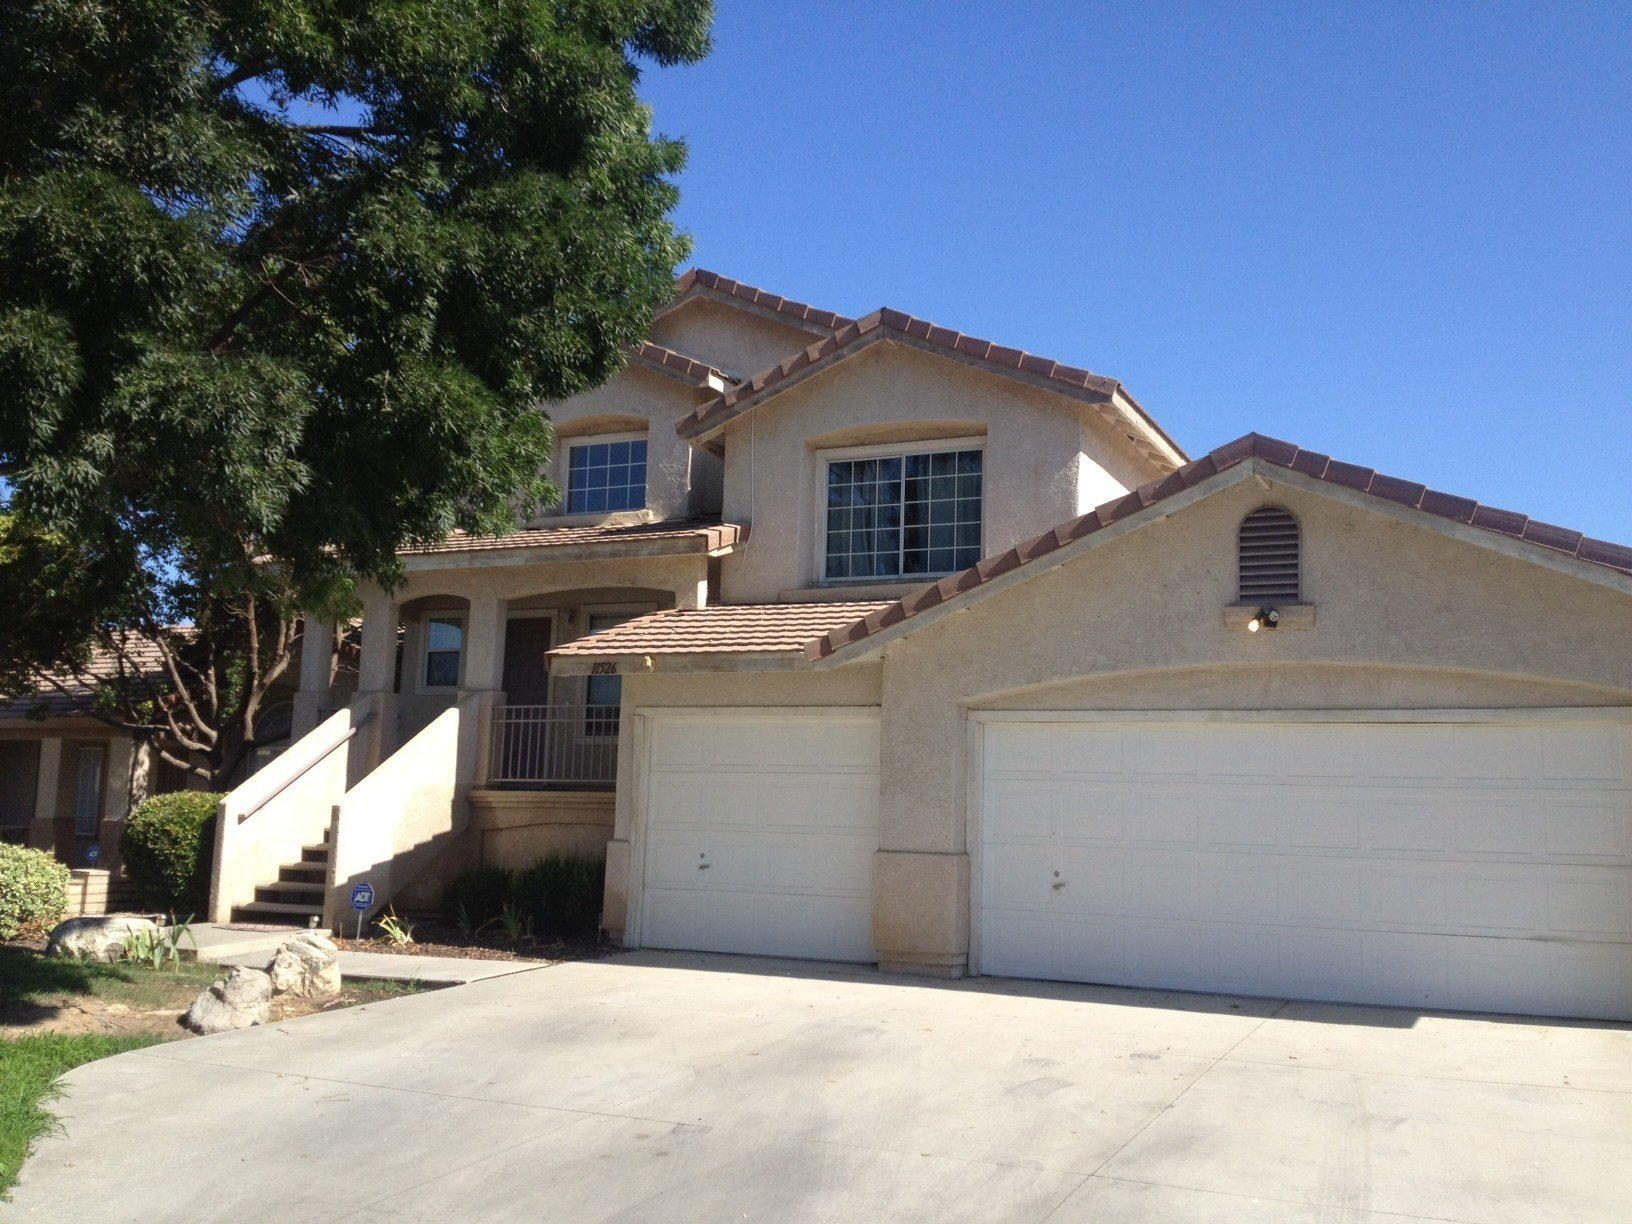 Best Bakersfield Property Solutions Bakersfield Ca Real With Pictures